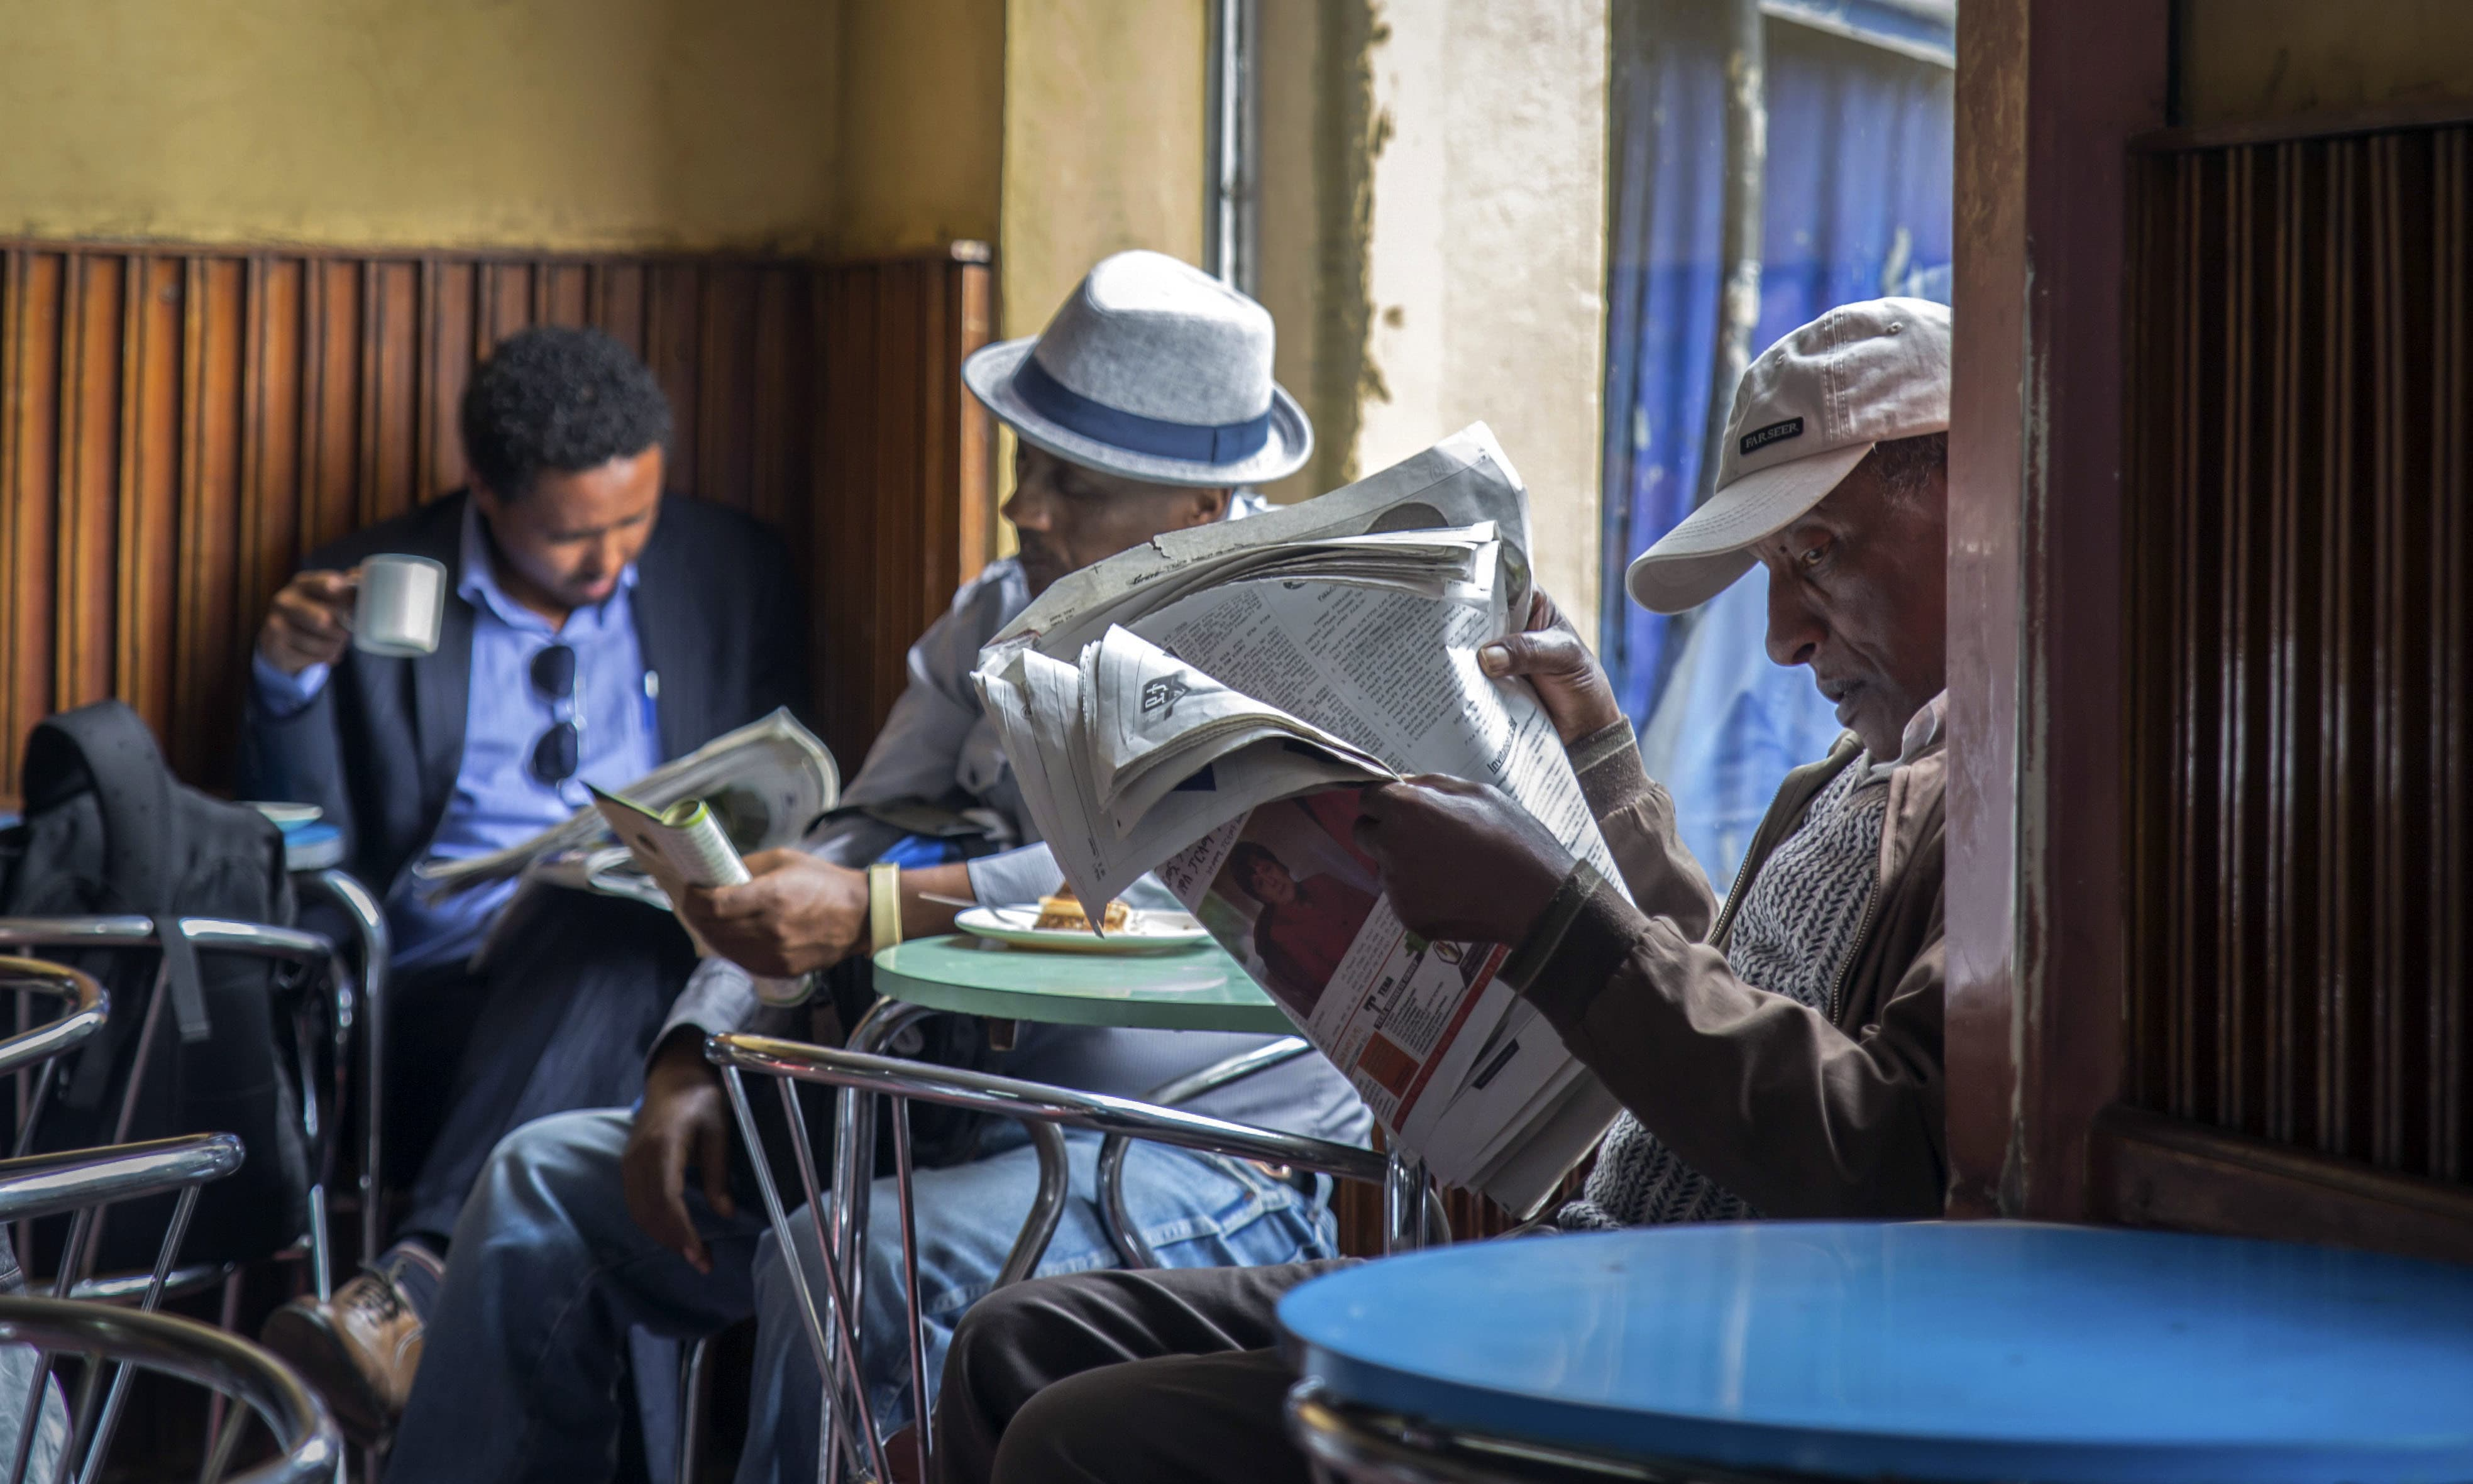 In this Monday, Oct. 10, 2016 file photo, Ethiopian men read newspapers and drink coffee at a cafe during a declared state of emergency and internet shutdown in Addis Ababa, Ethiopia. — AP